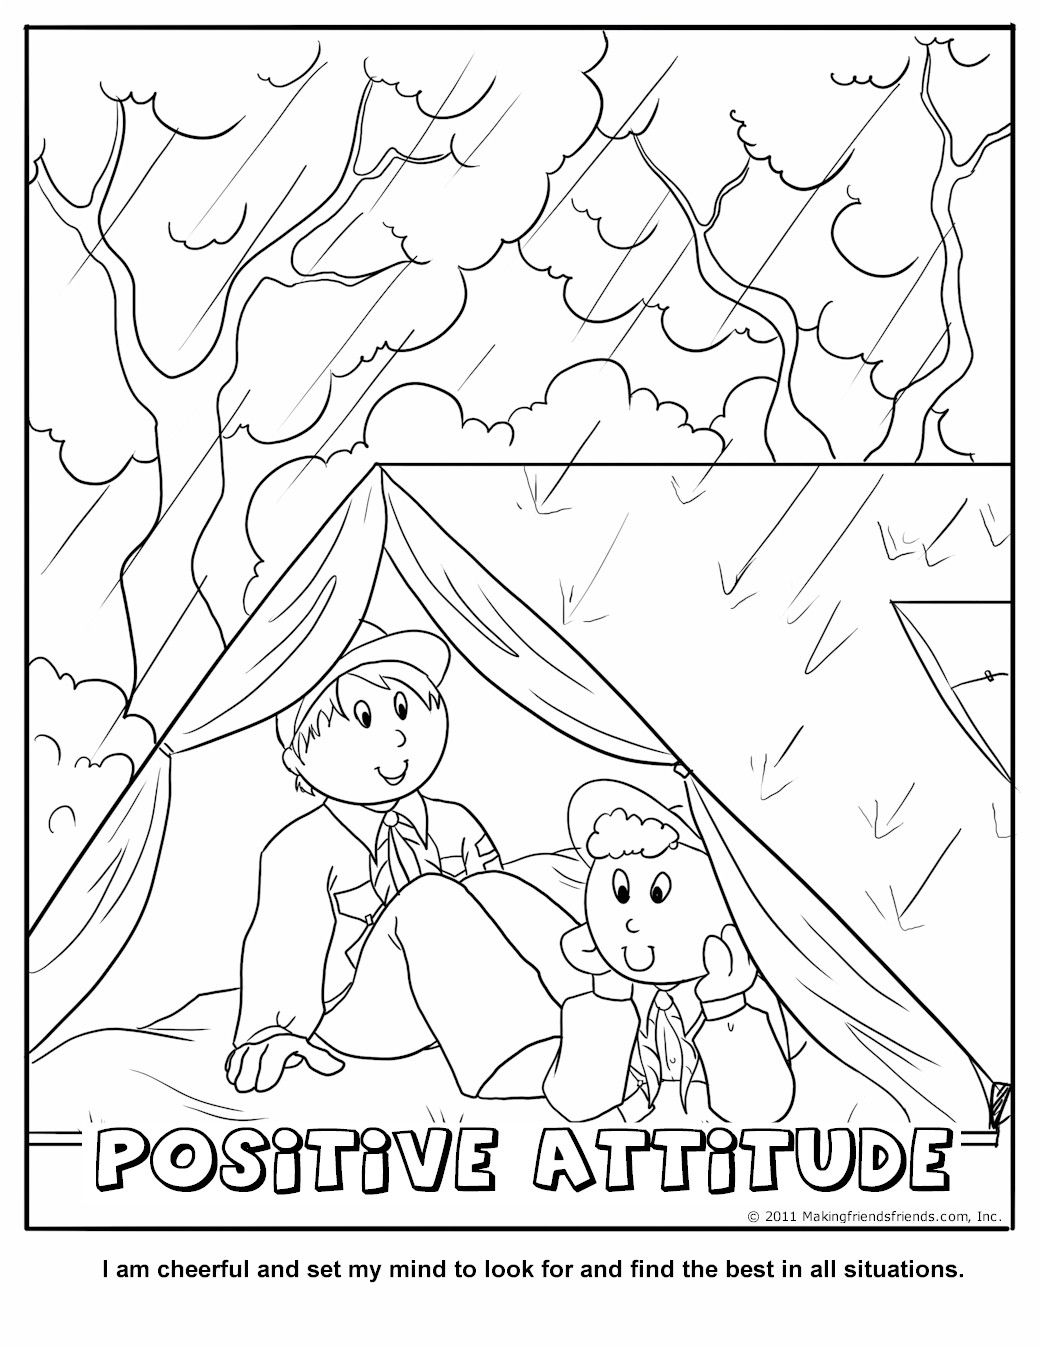 Coloring Page Of Boy Thinking Pages 2 Lab In Ebf59fa64ff0e923af5623c180fd31ae